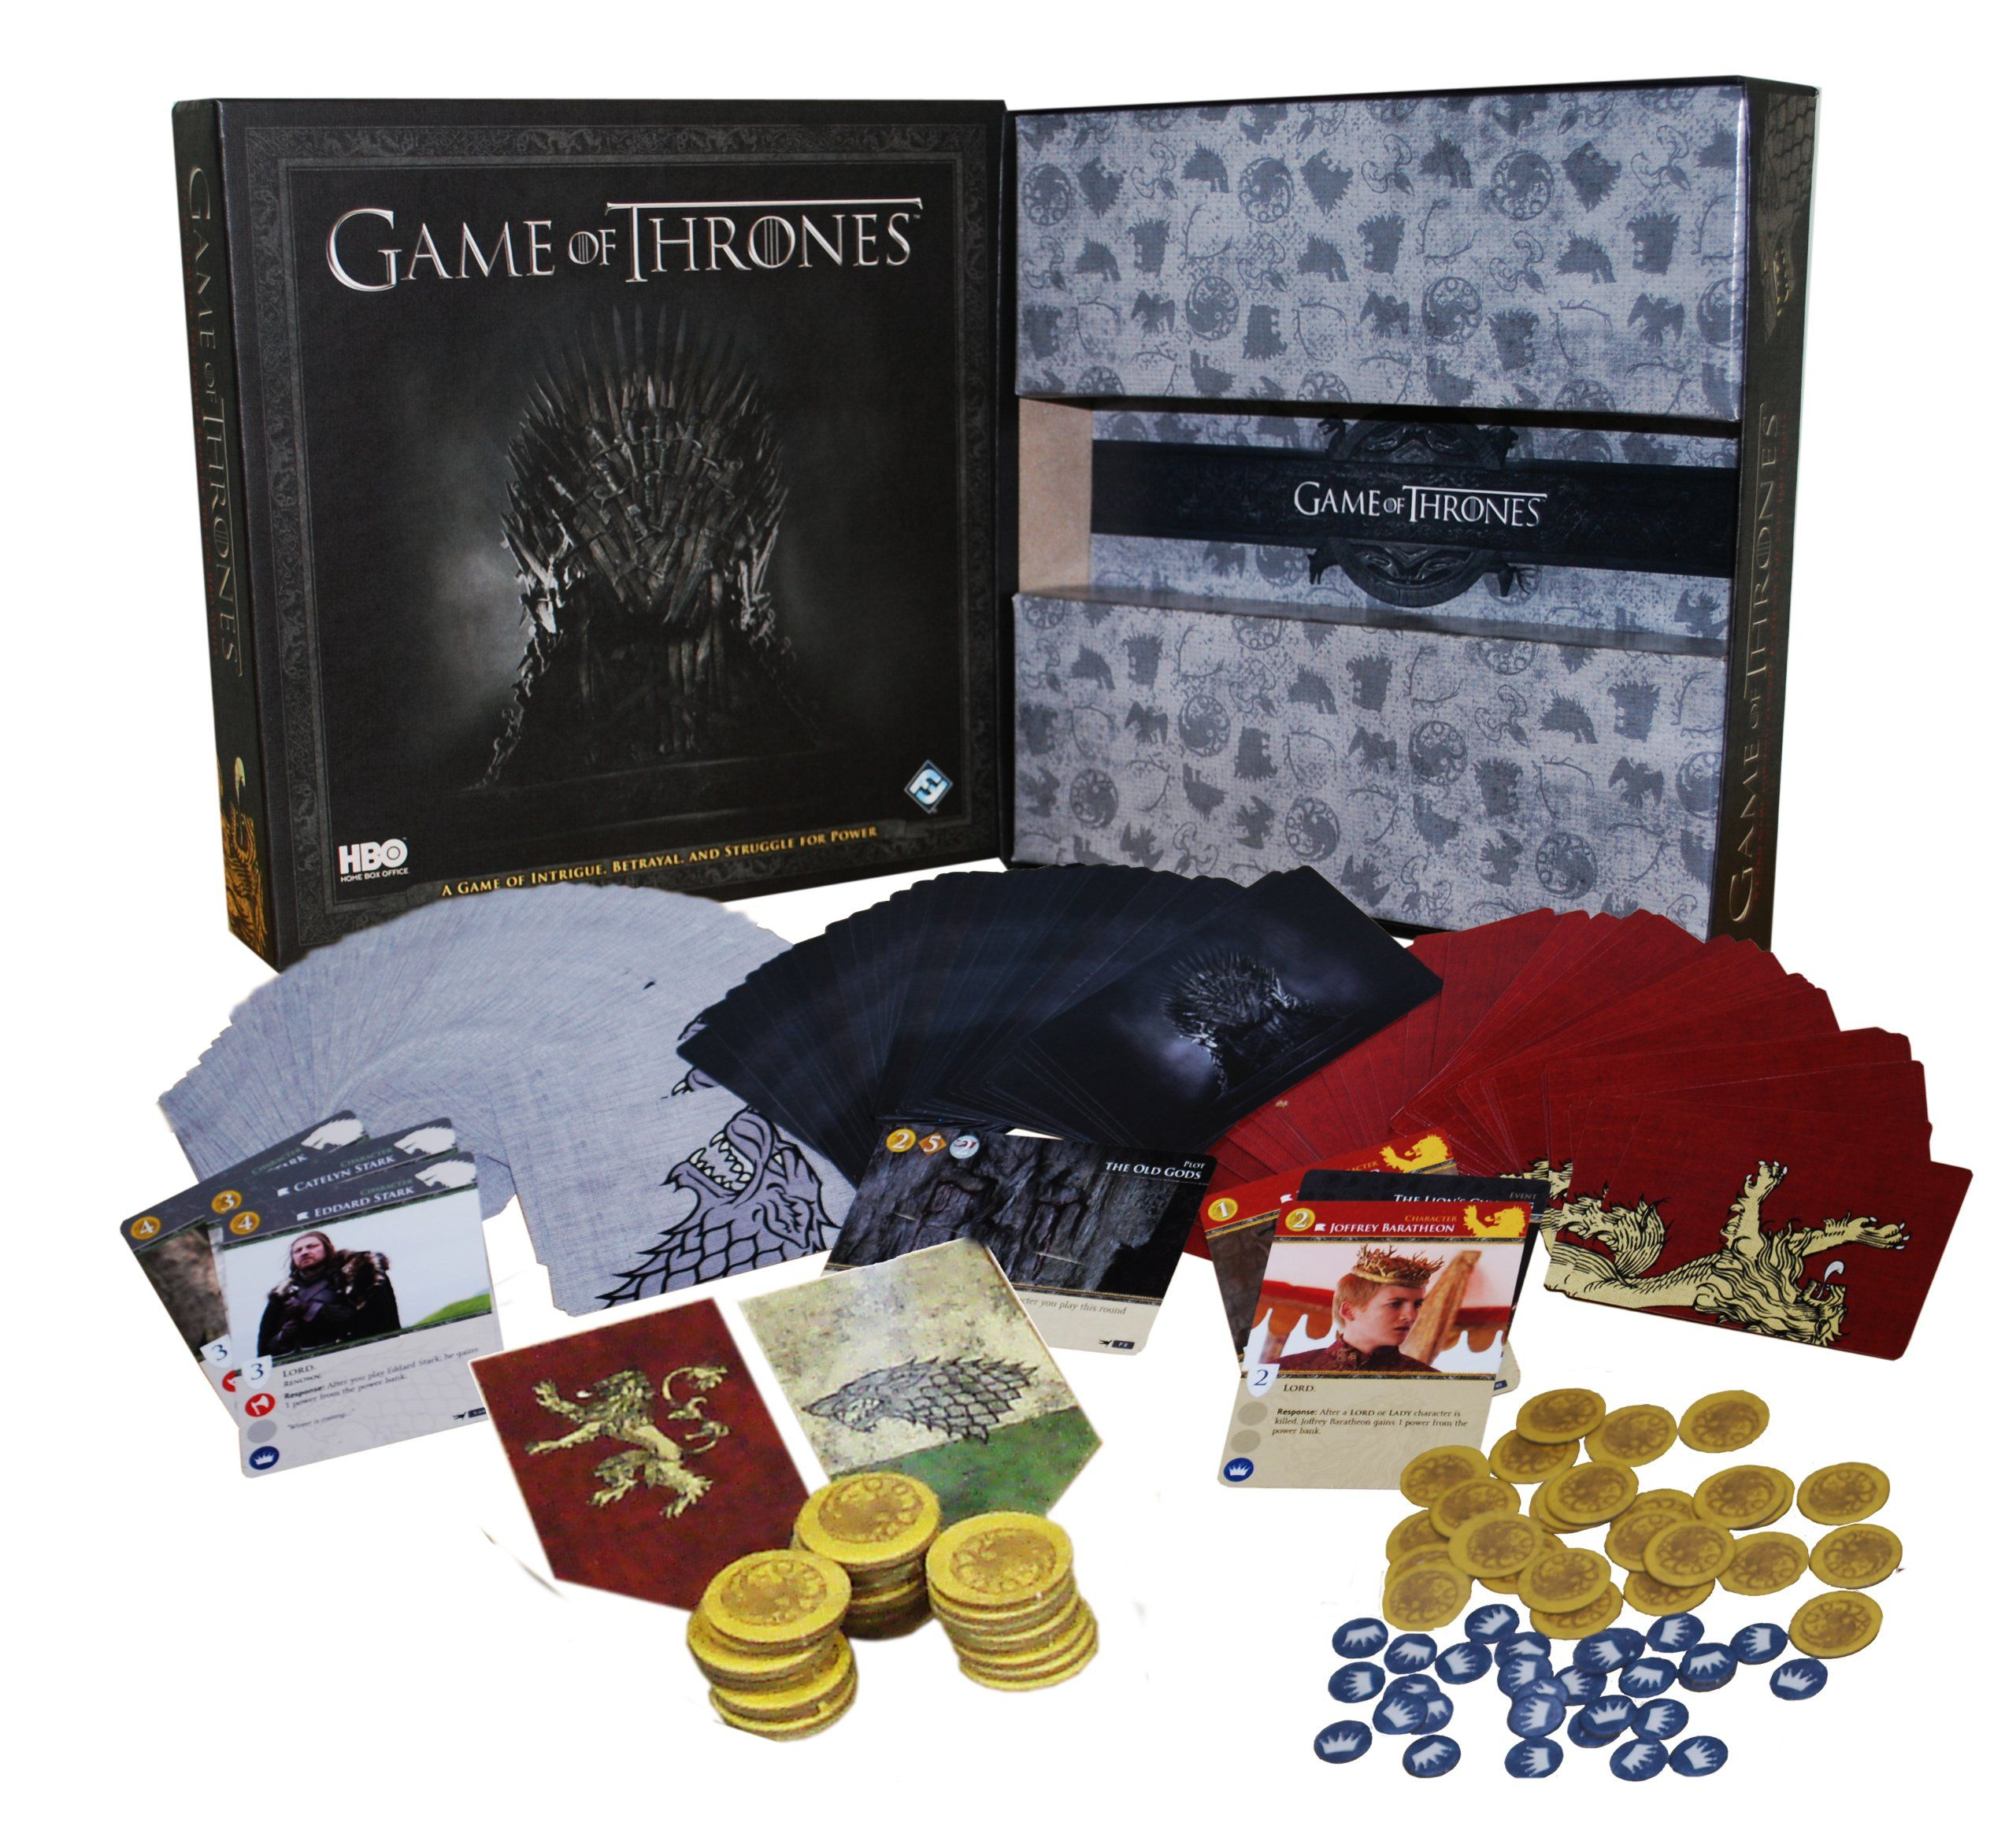 Game of thrones card game hbo edition game of thrones